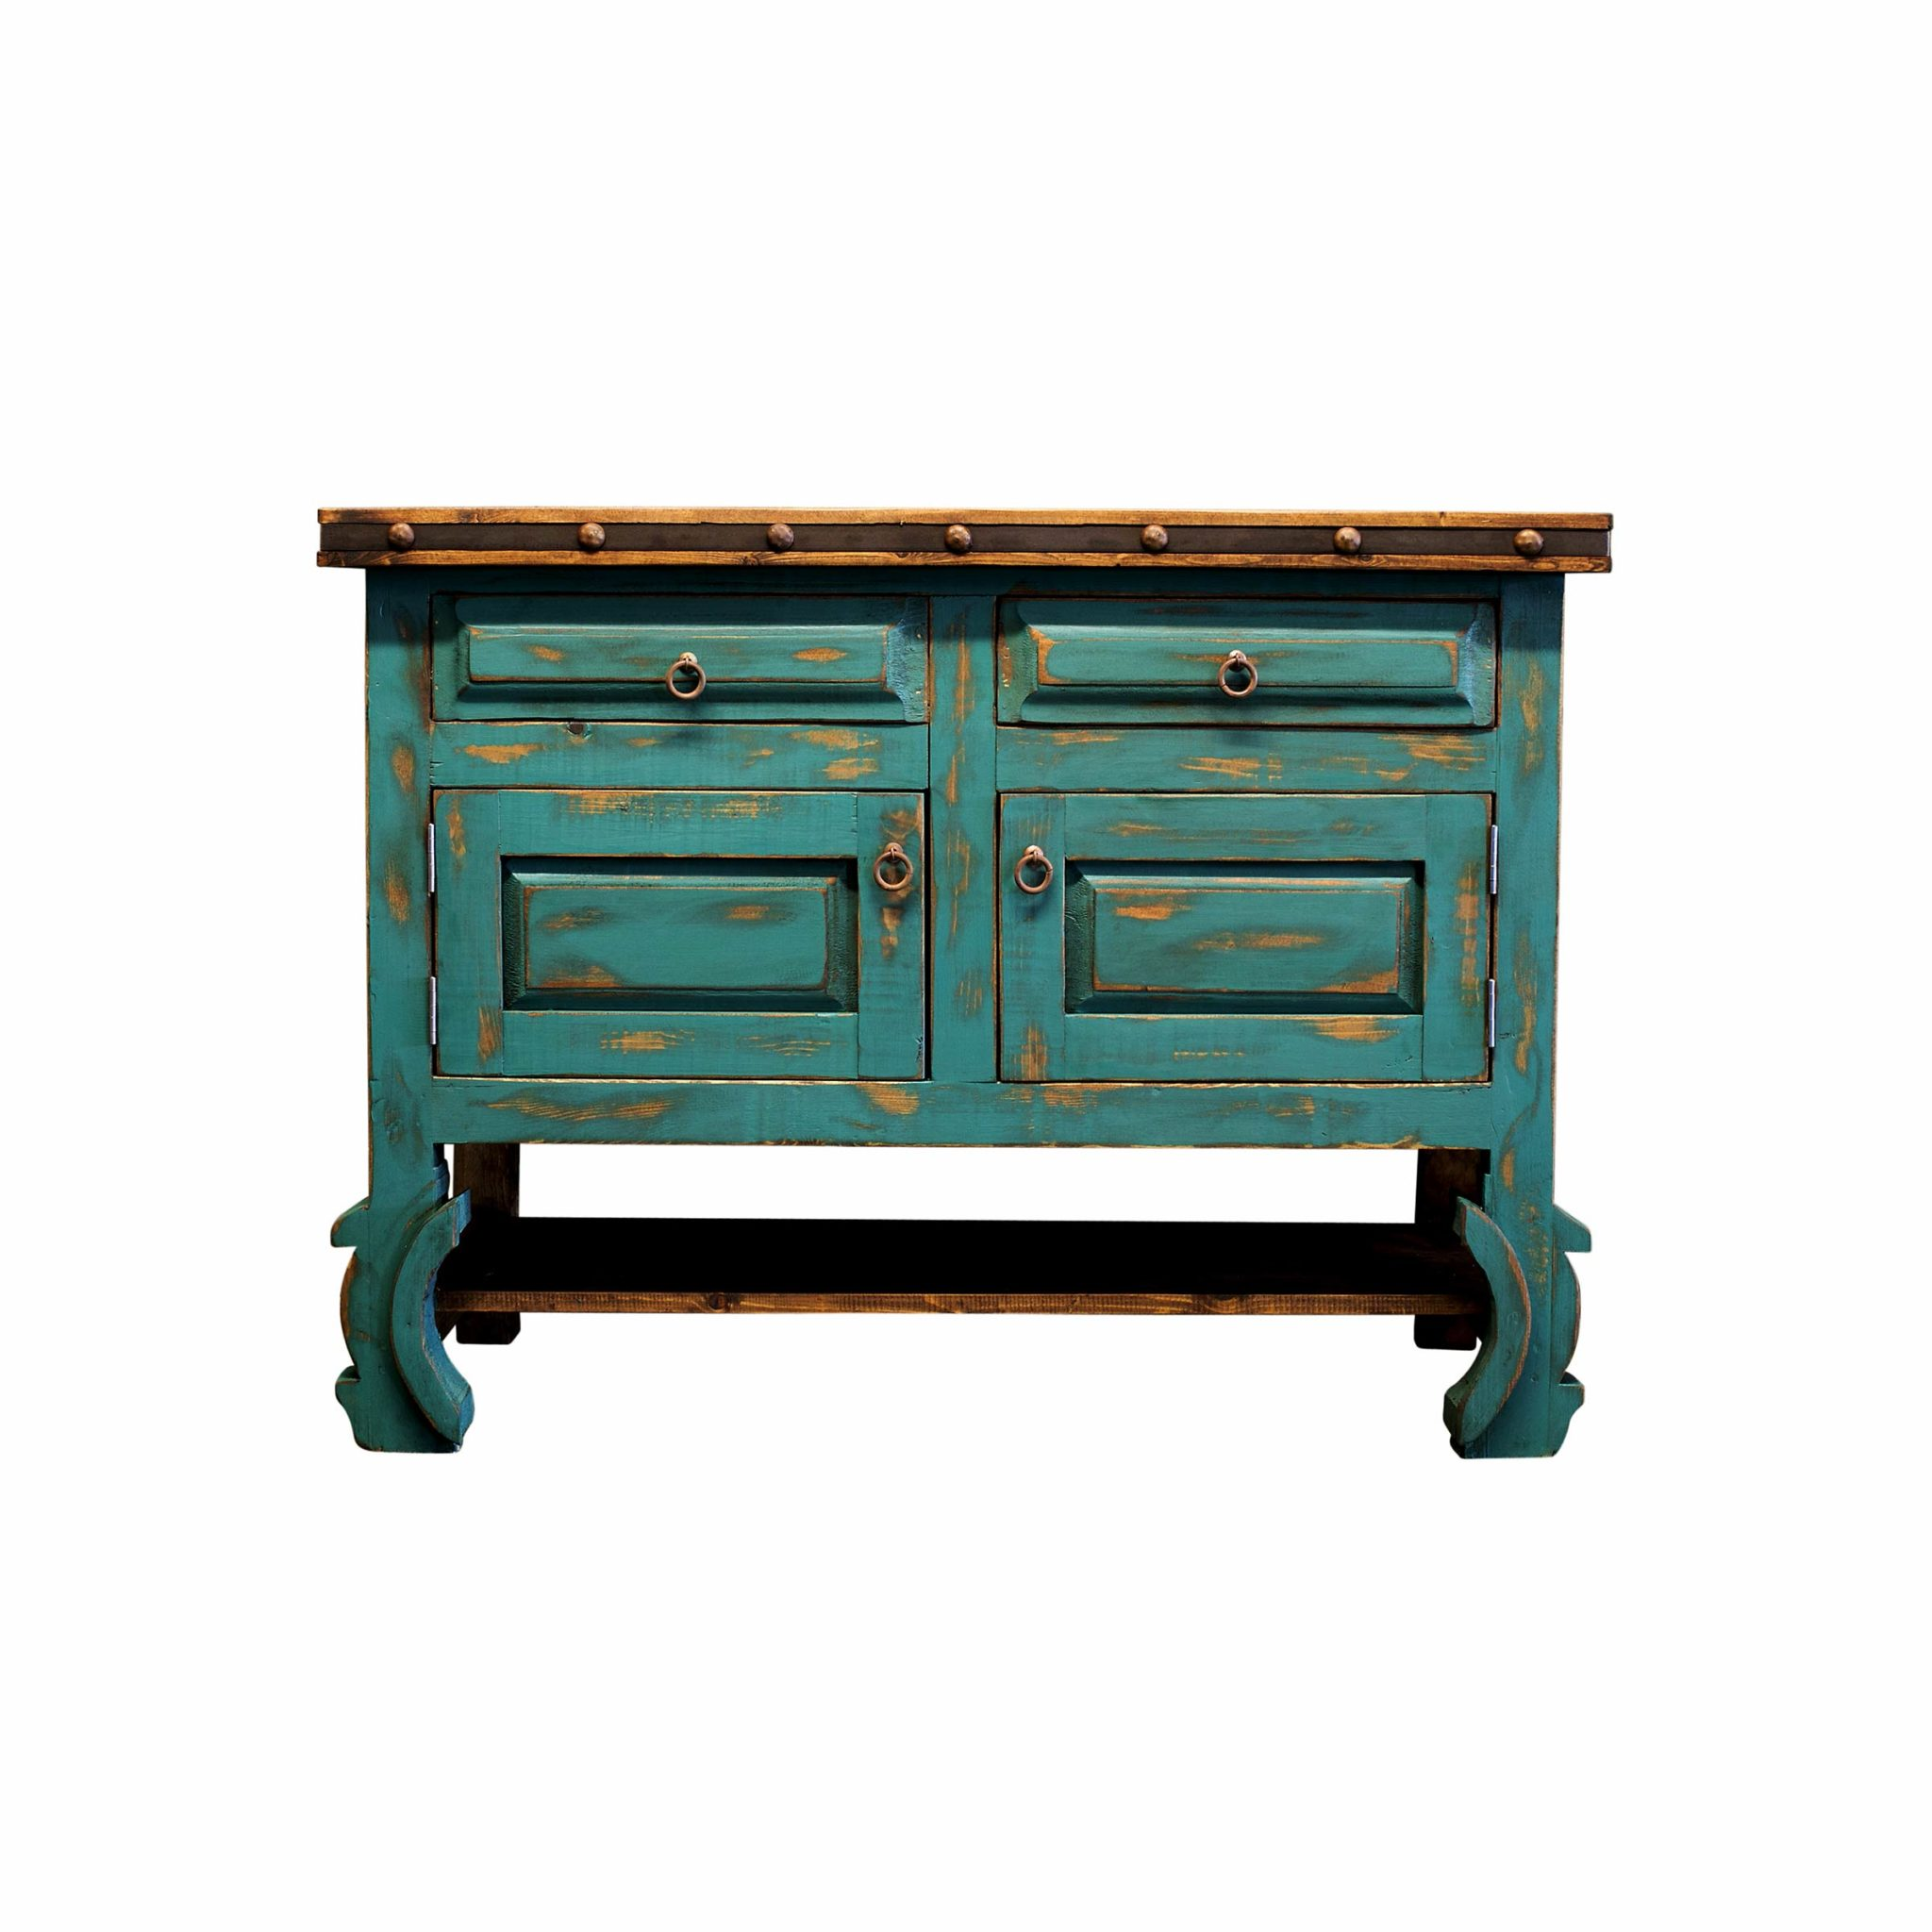 Buy Rustic Turquoise Bathroom Vanity line